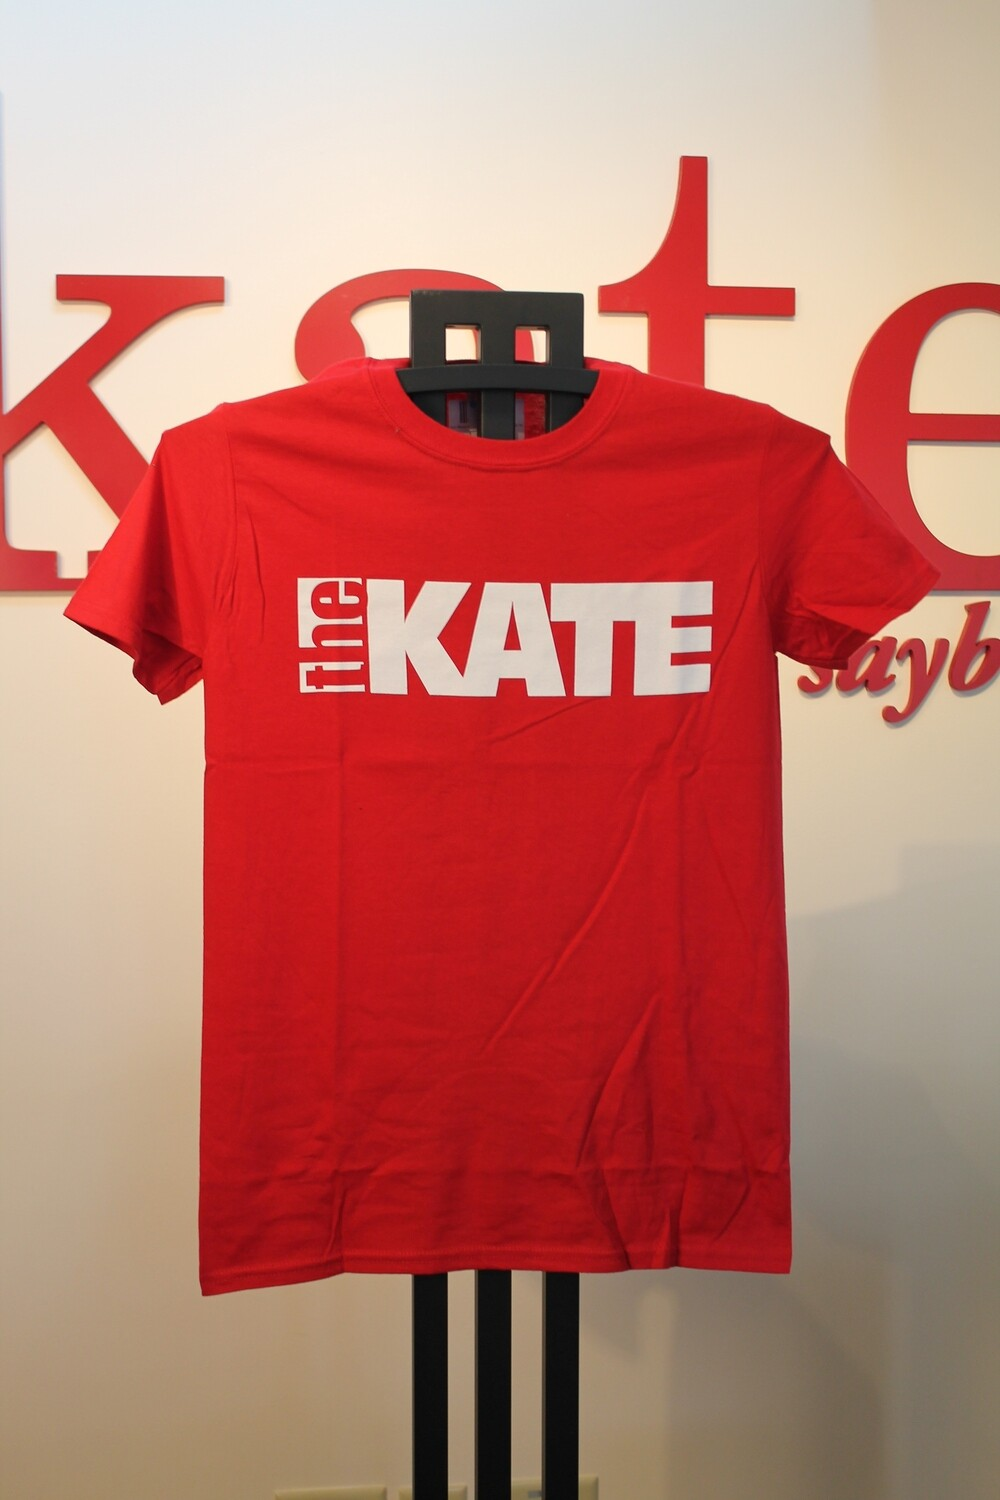 Short Sleeve Shirt - THE KATE/White Logo